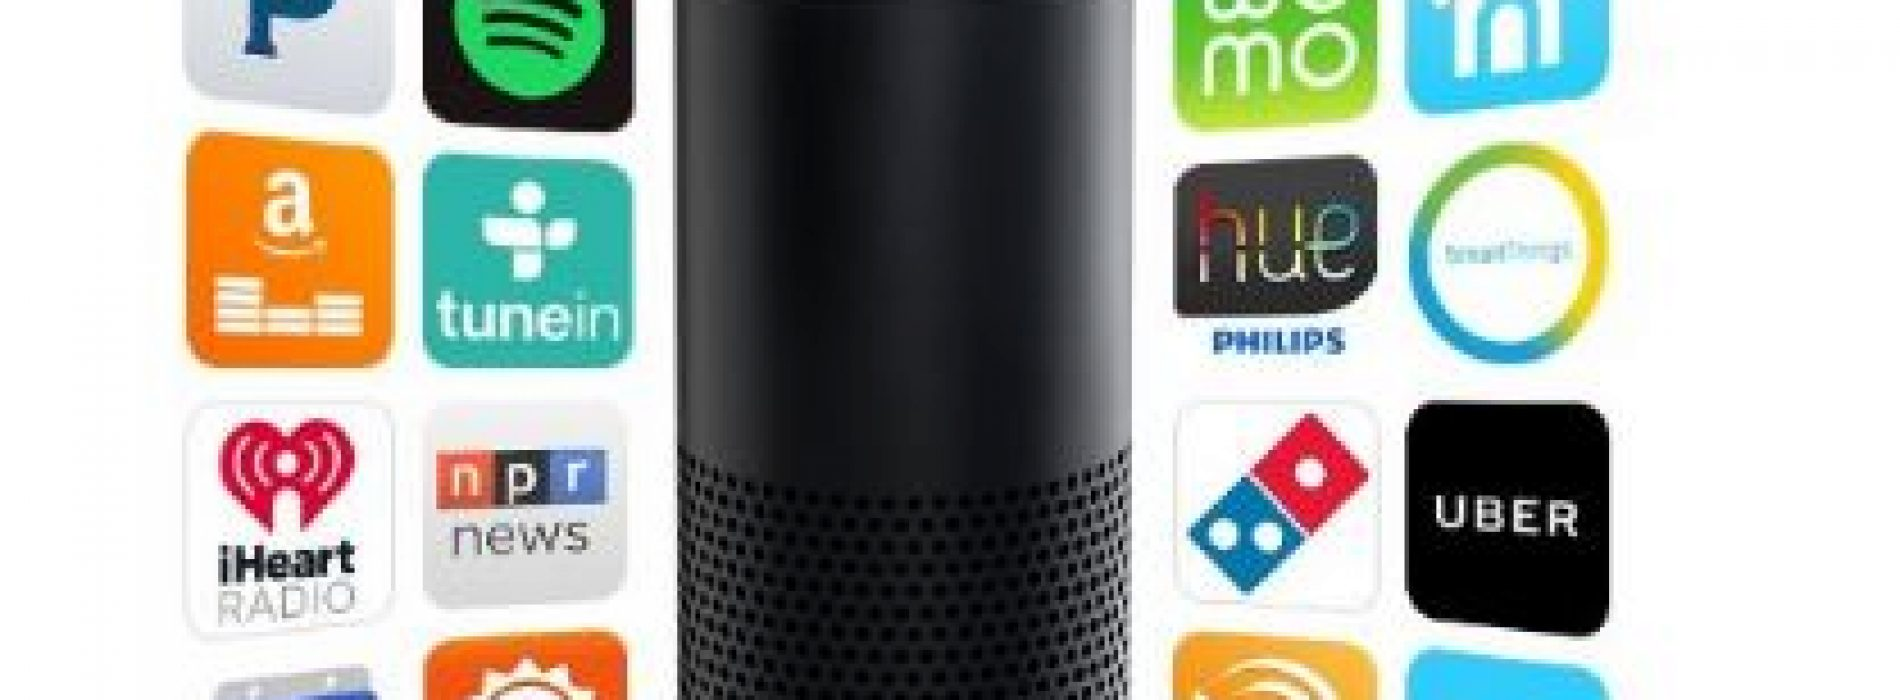 Amazon's Alexa Turns One & Adds Voice Activated Enabling of Skills (Apps)